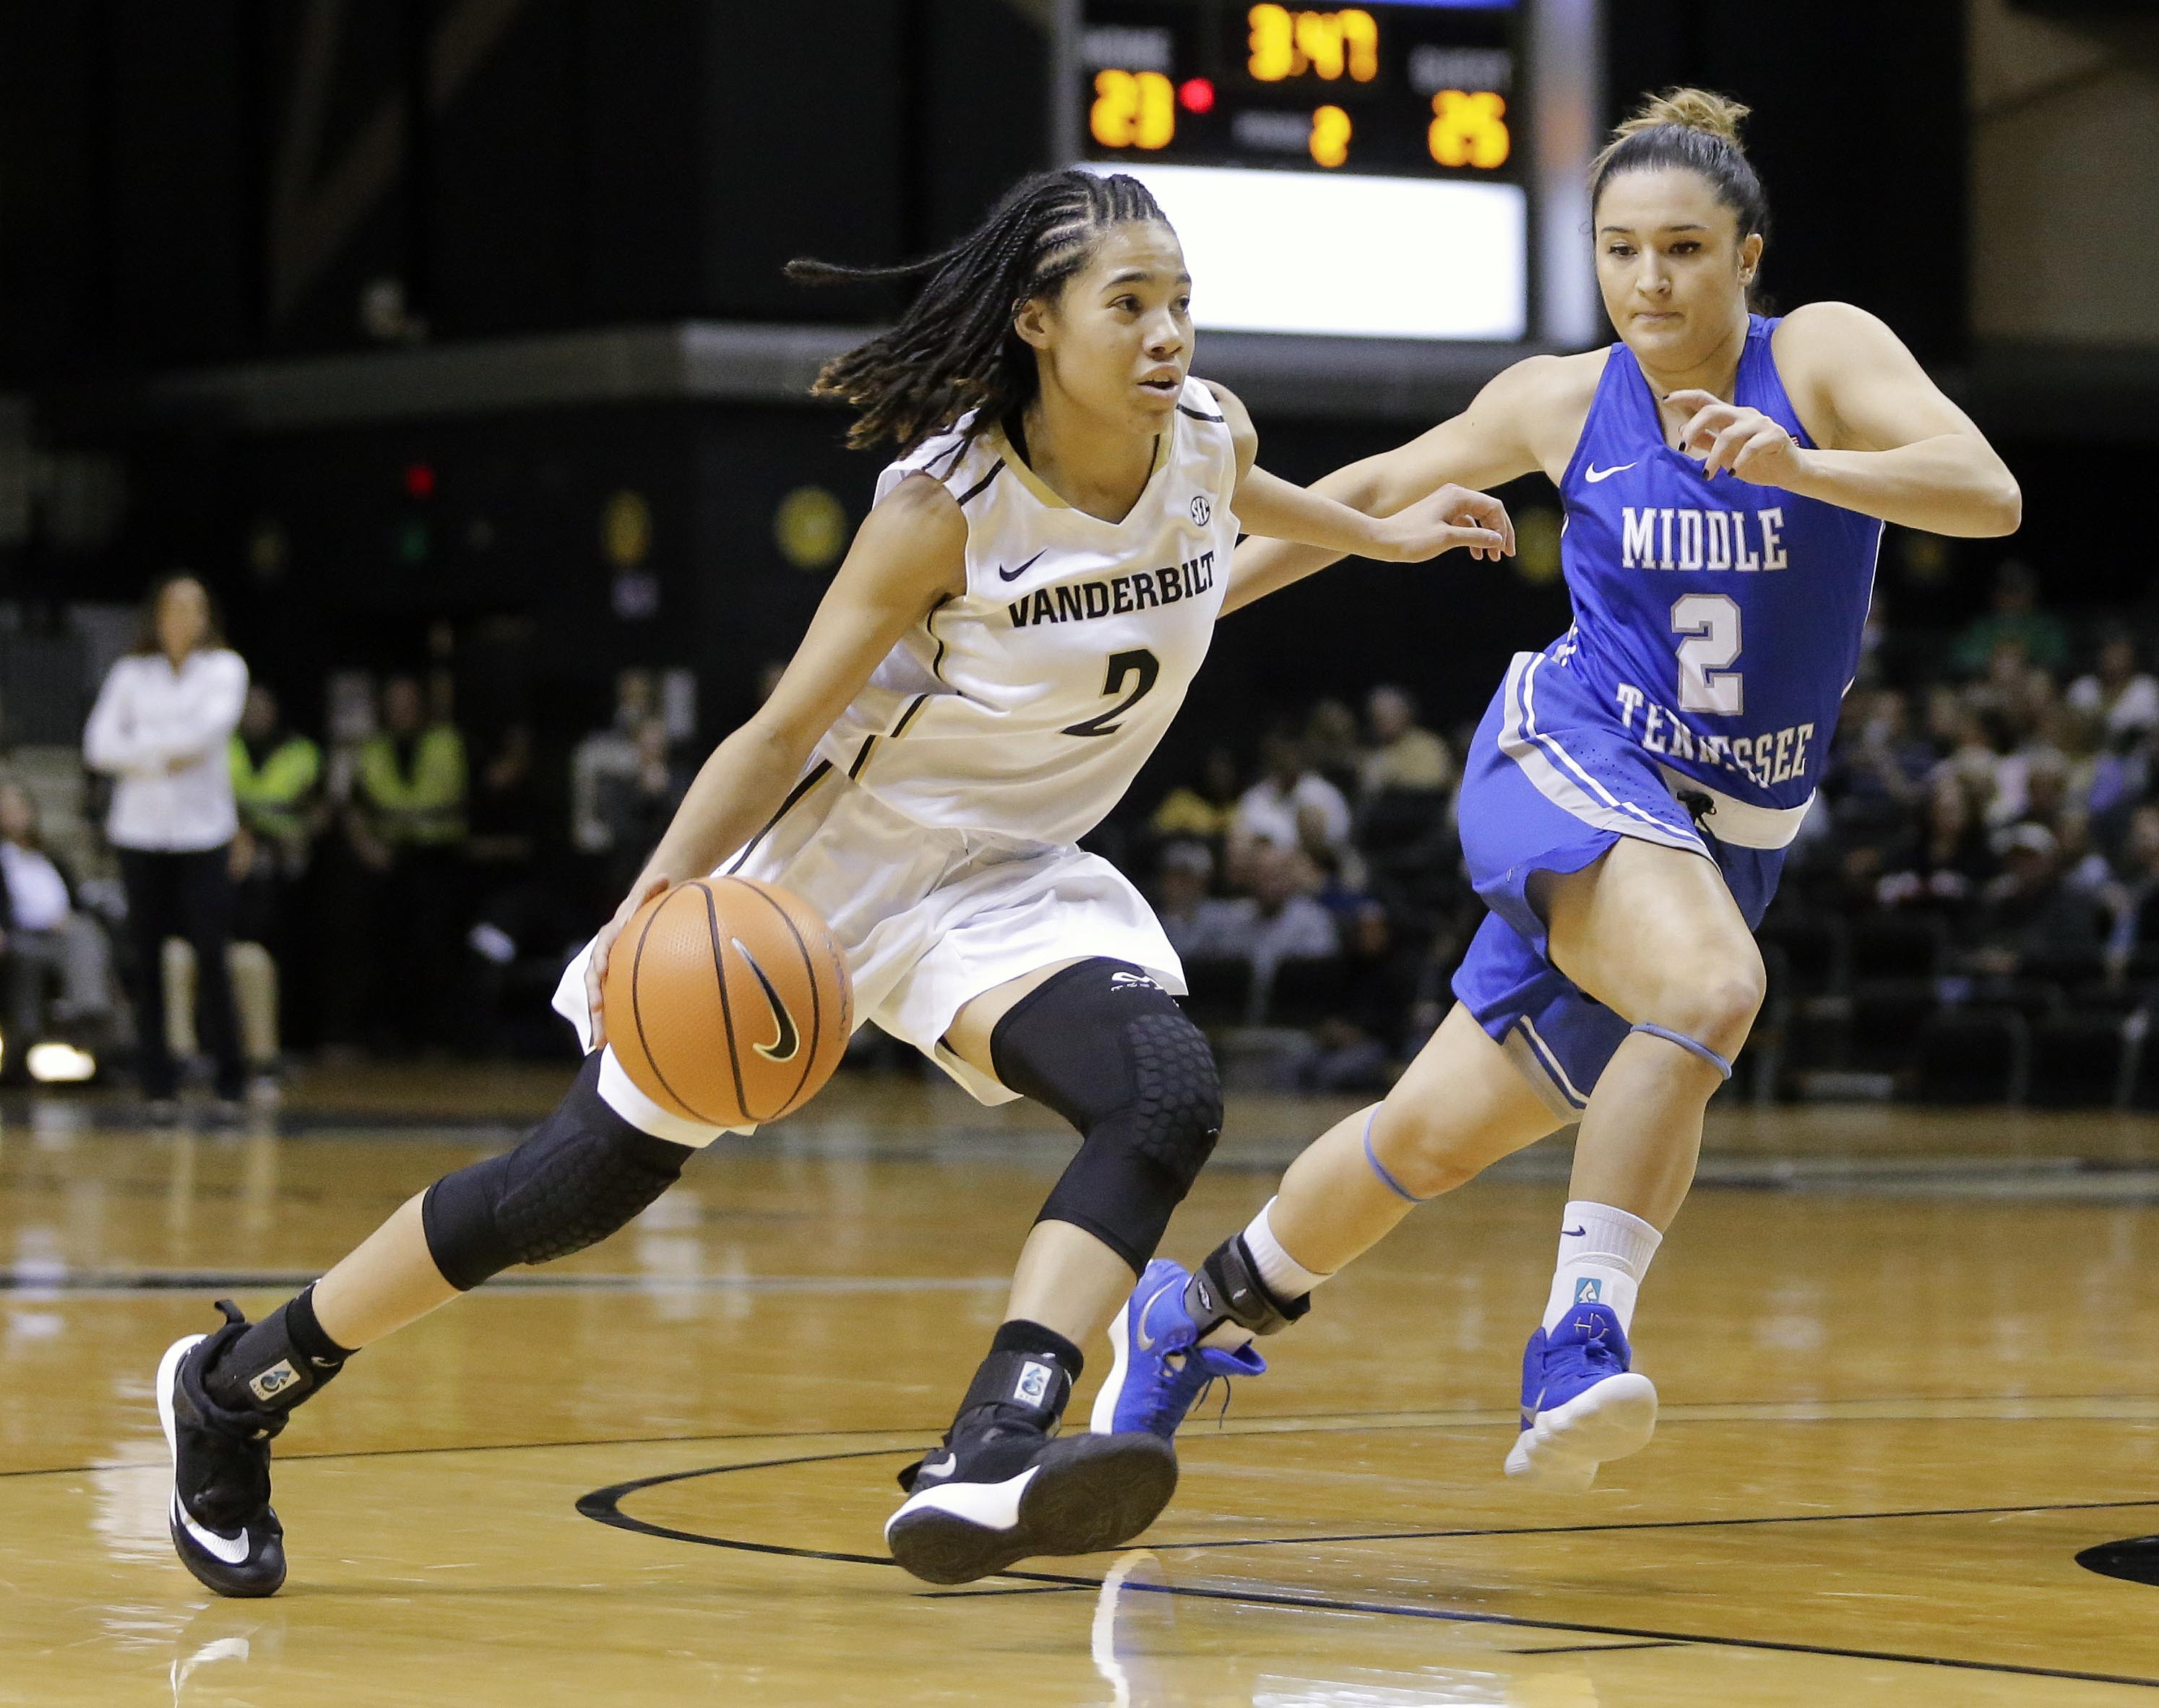 Vanderbilt guard Chelsie Hall (left) drives against Middle Tennessee guard Zeynep Canbaz (right) in the first half of an NCAA college basketball game on Friday.